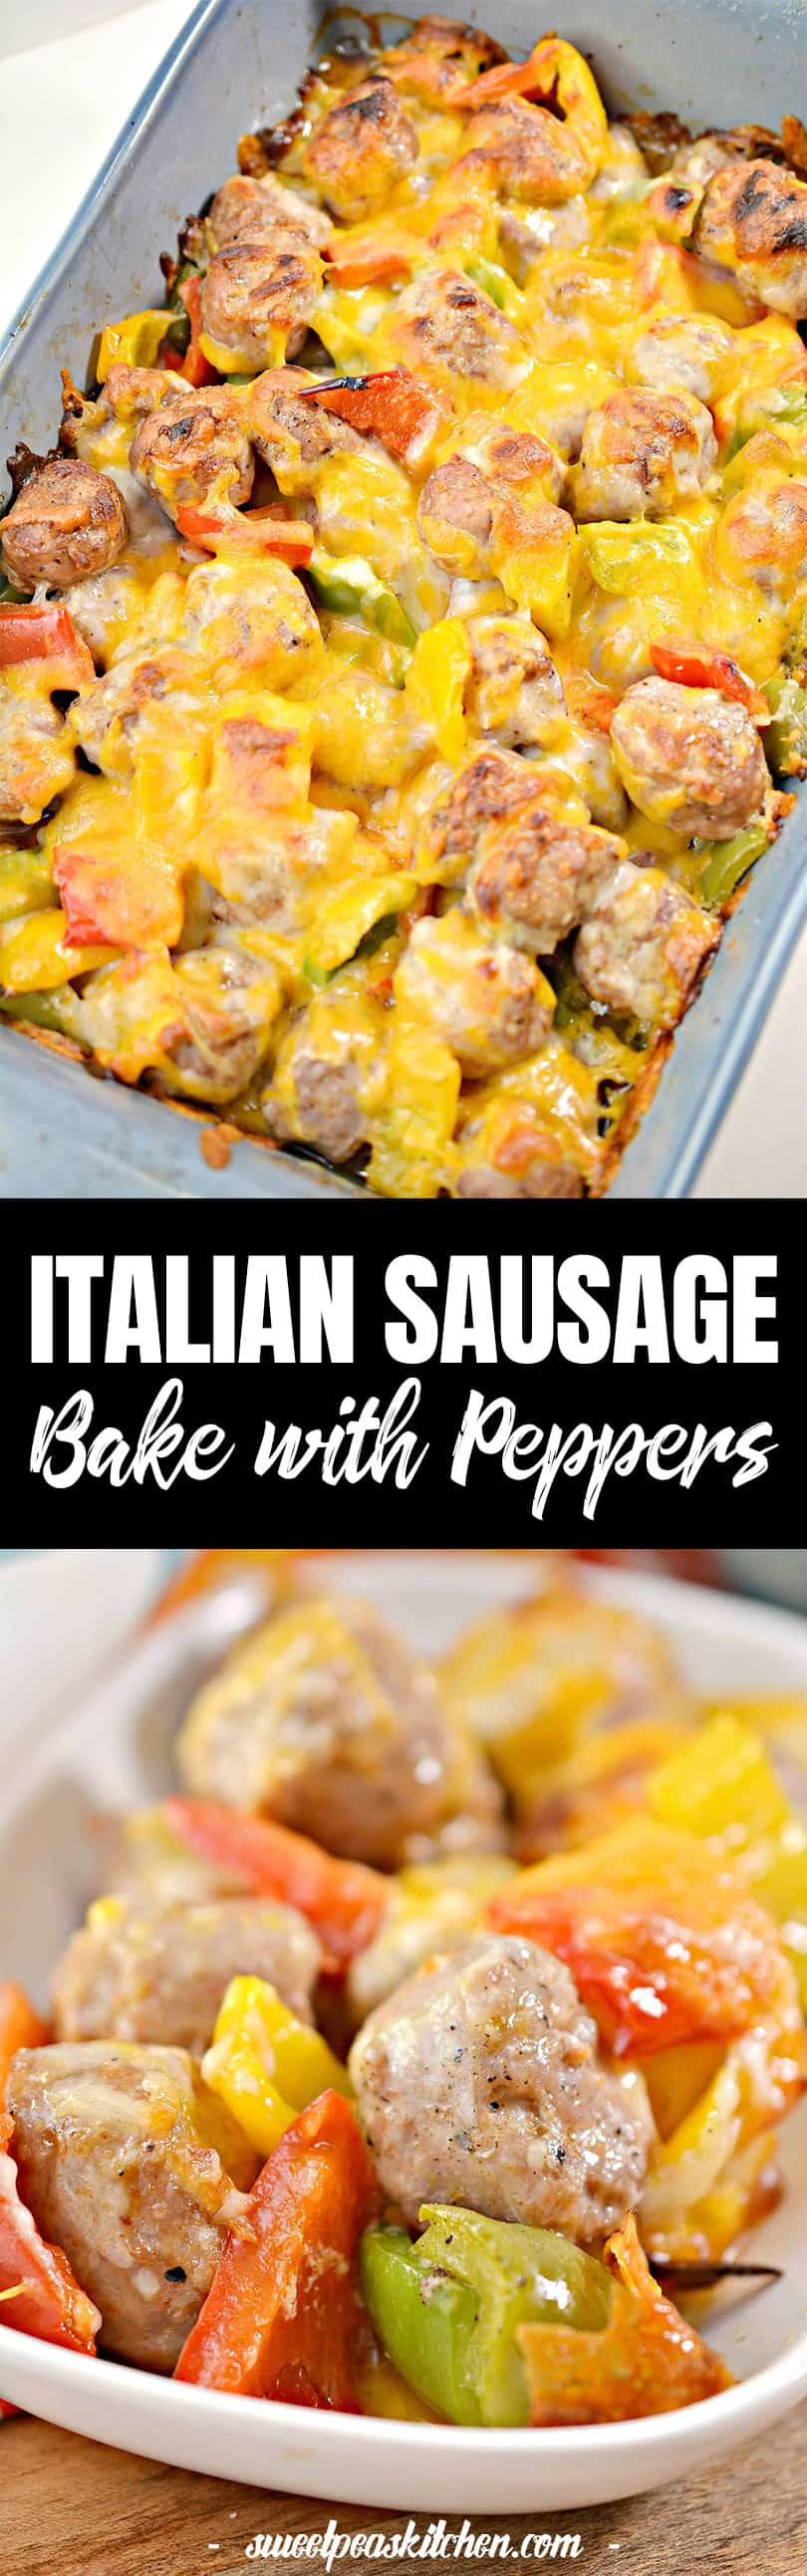 Cheesy Italian Sausage Bake with Peppers